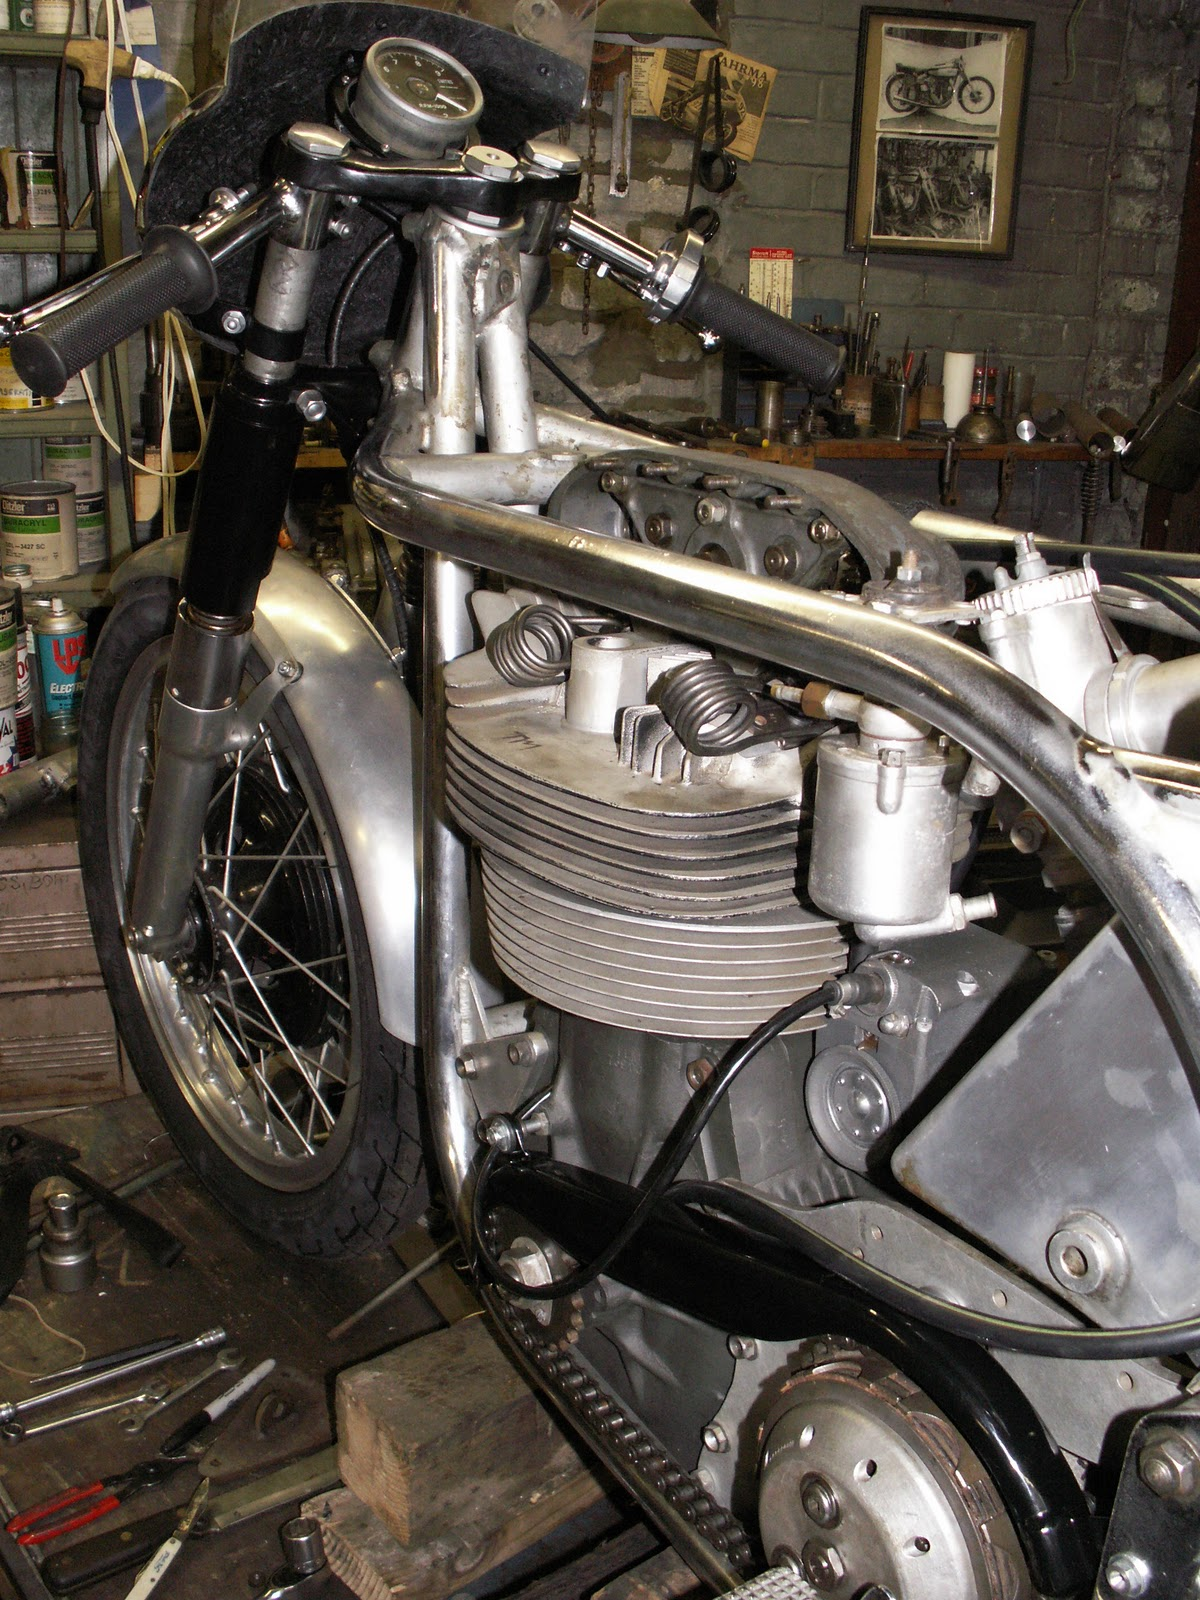 My Classic Motorcycle The 1961 Norton Manx